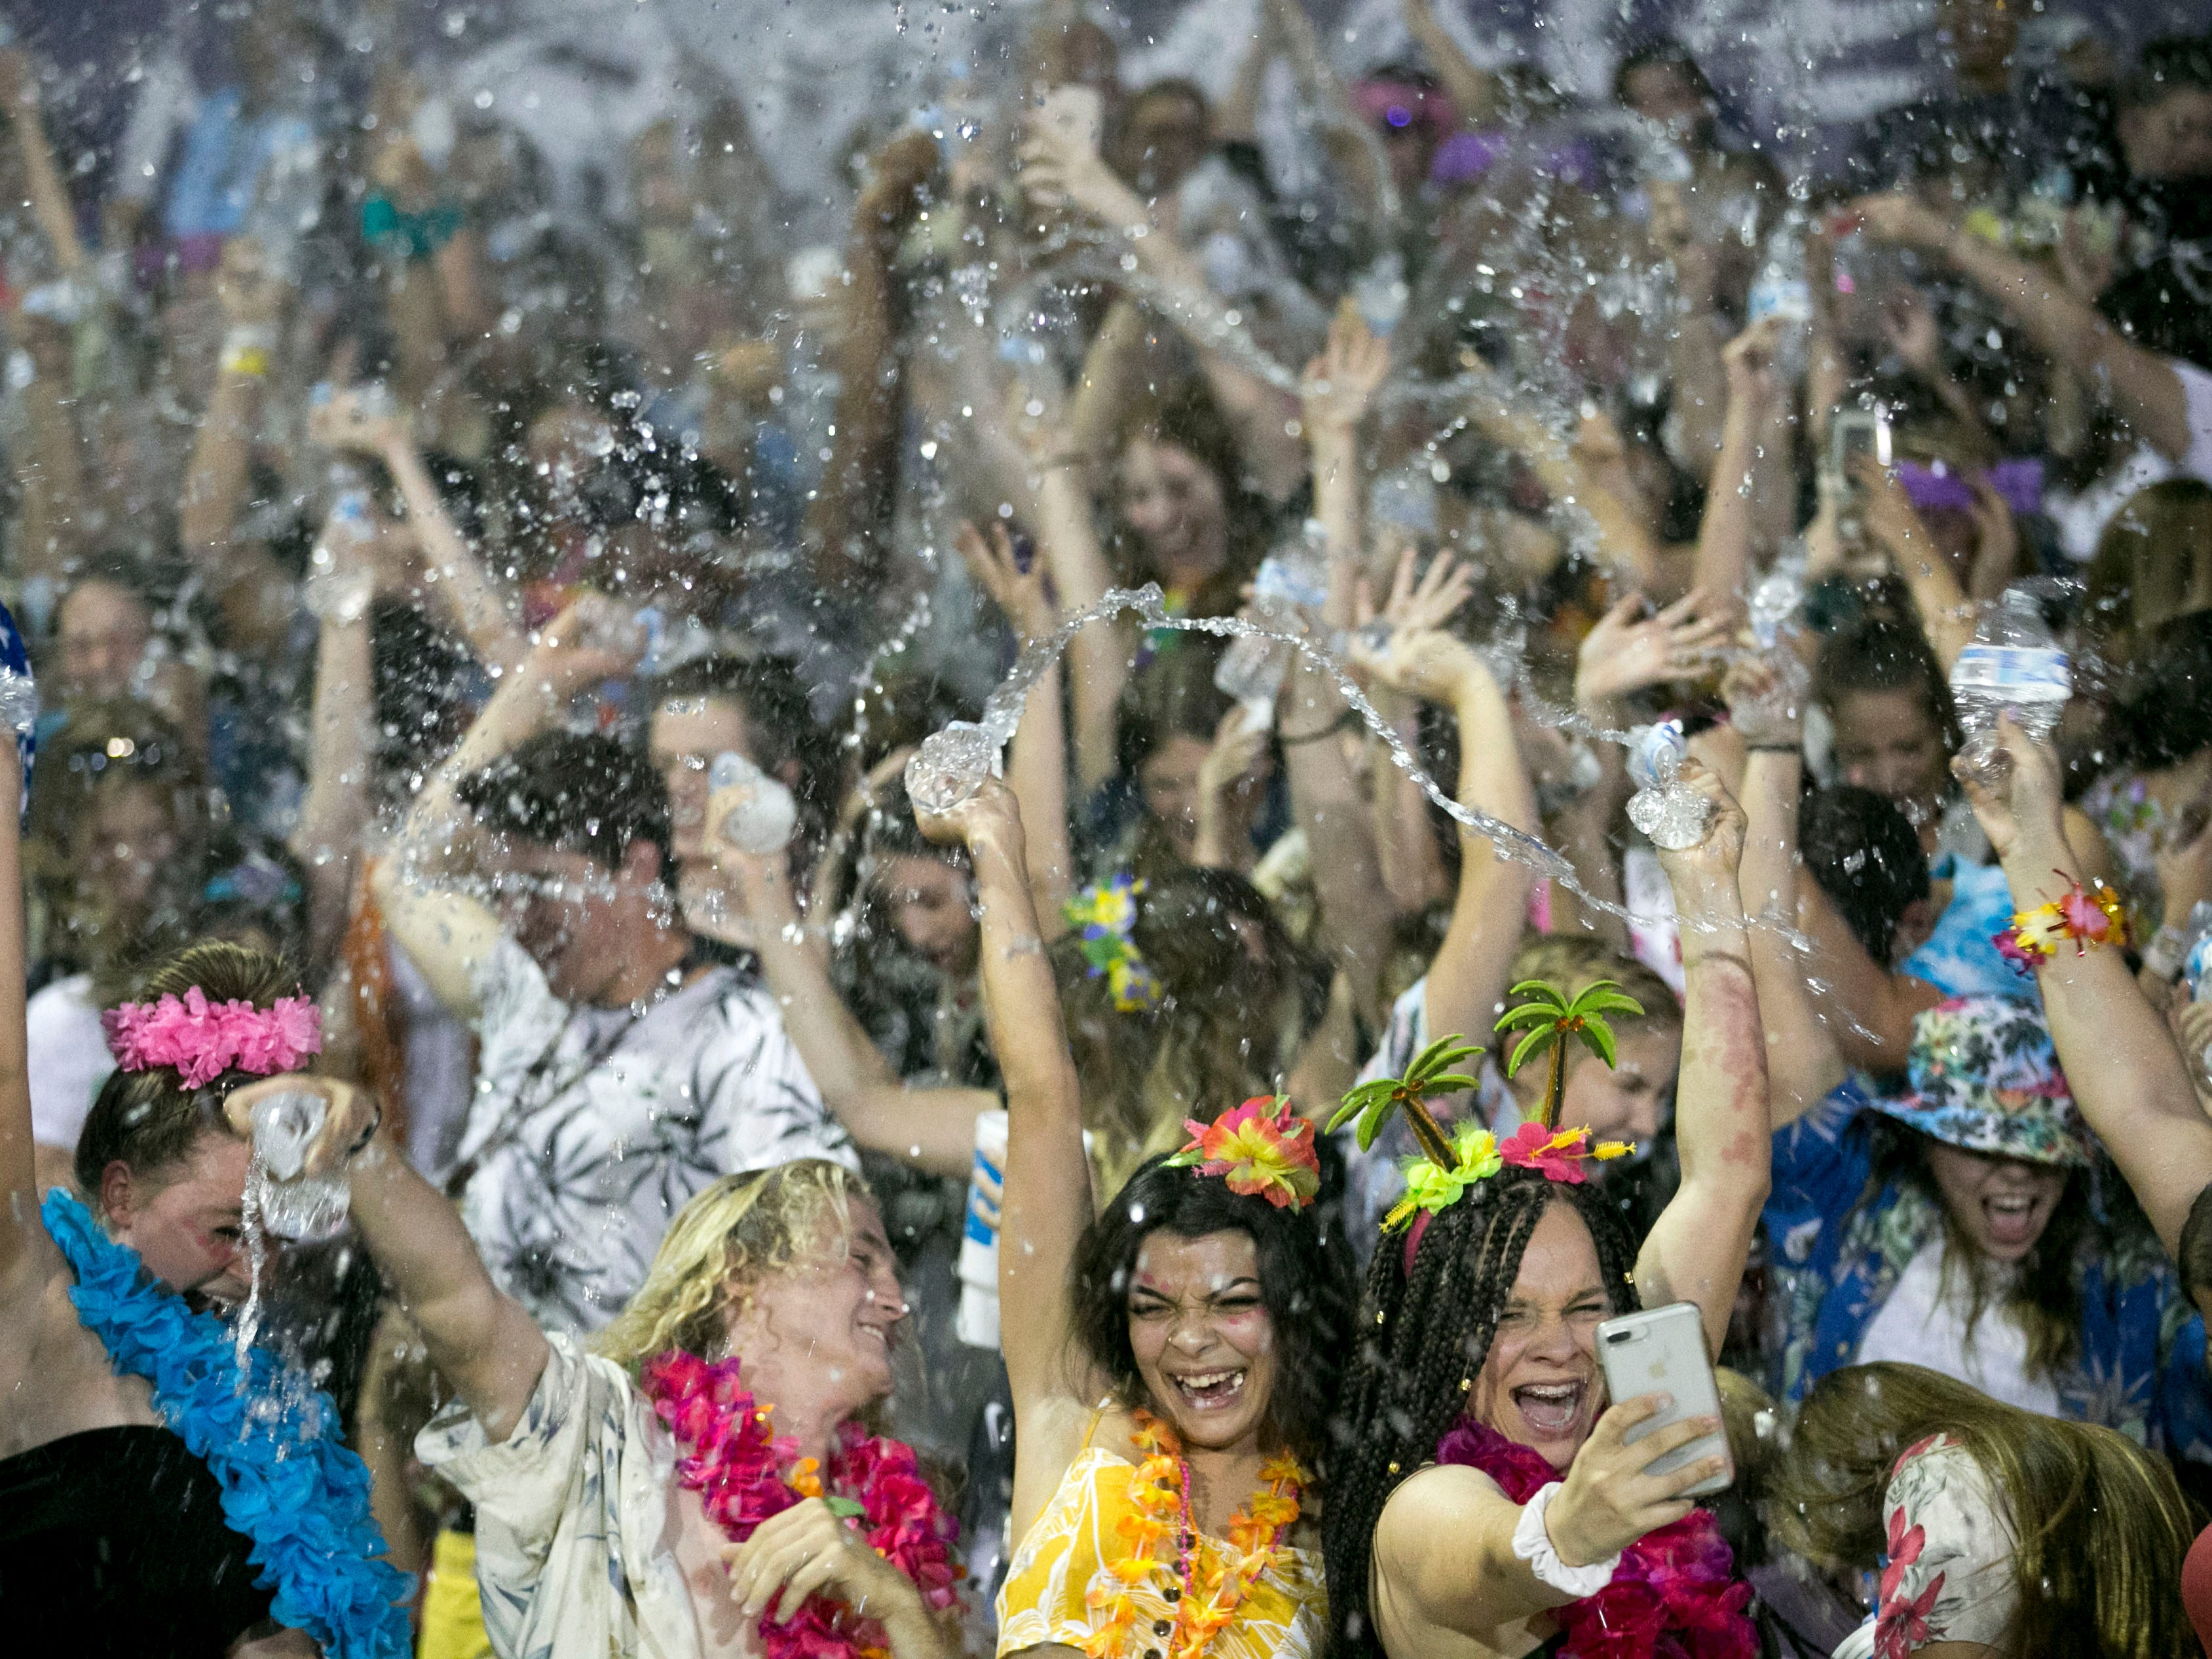 The Higley High student section cheers and splashes bottled water around during kickoff at the start of the high school football game between Millennium and Higley High at Higley High in Gilbert on Friday evening, September 14, 2018.